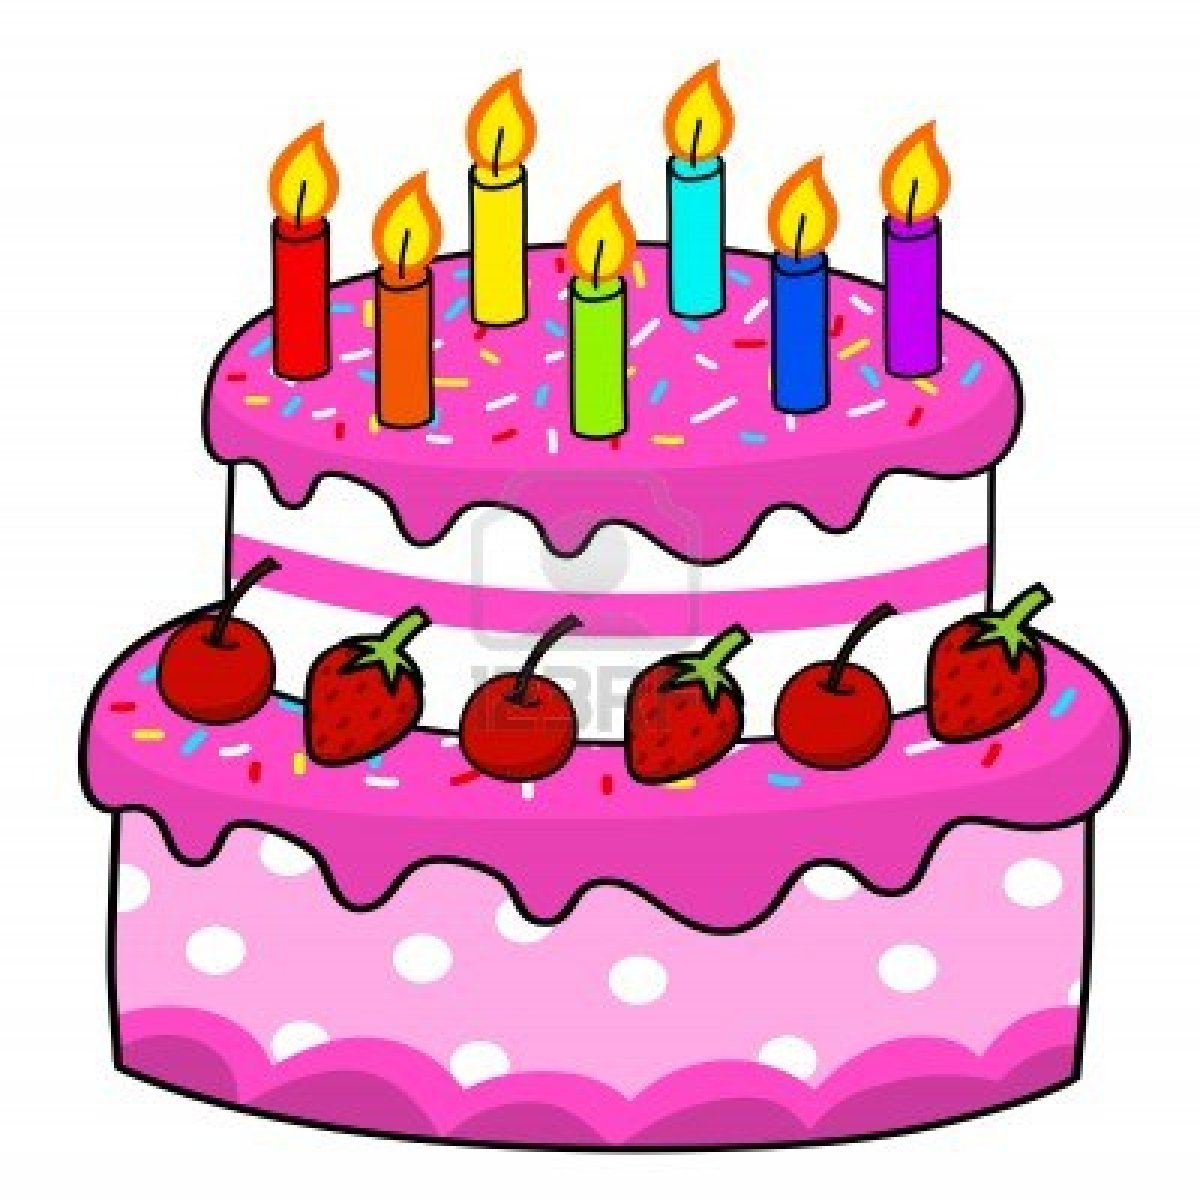 Cake Images In Cartoon : Birthday Cakes Of Cartoon ~ Image Inspiration of Cake and ...